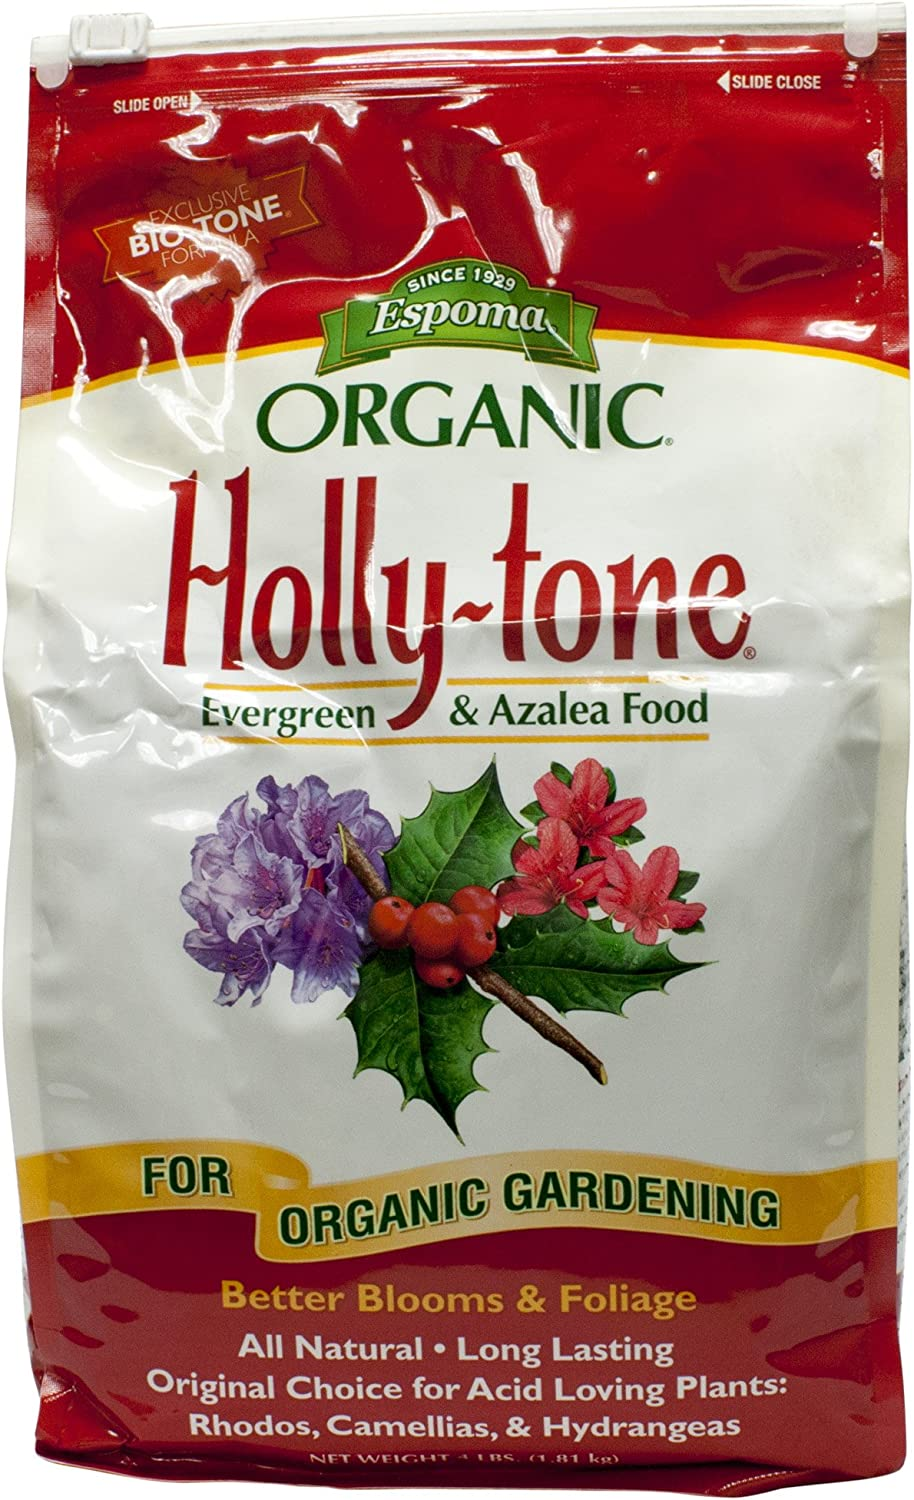 Espoma Organic Holly-Tone Evergreen and Azalea Food, 4LBS